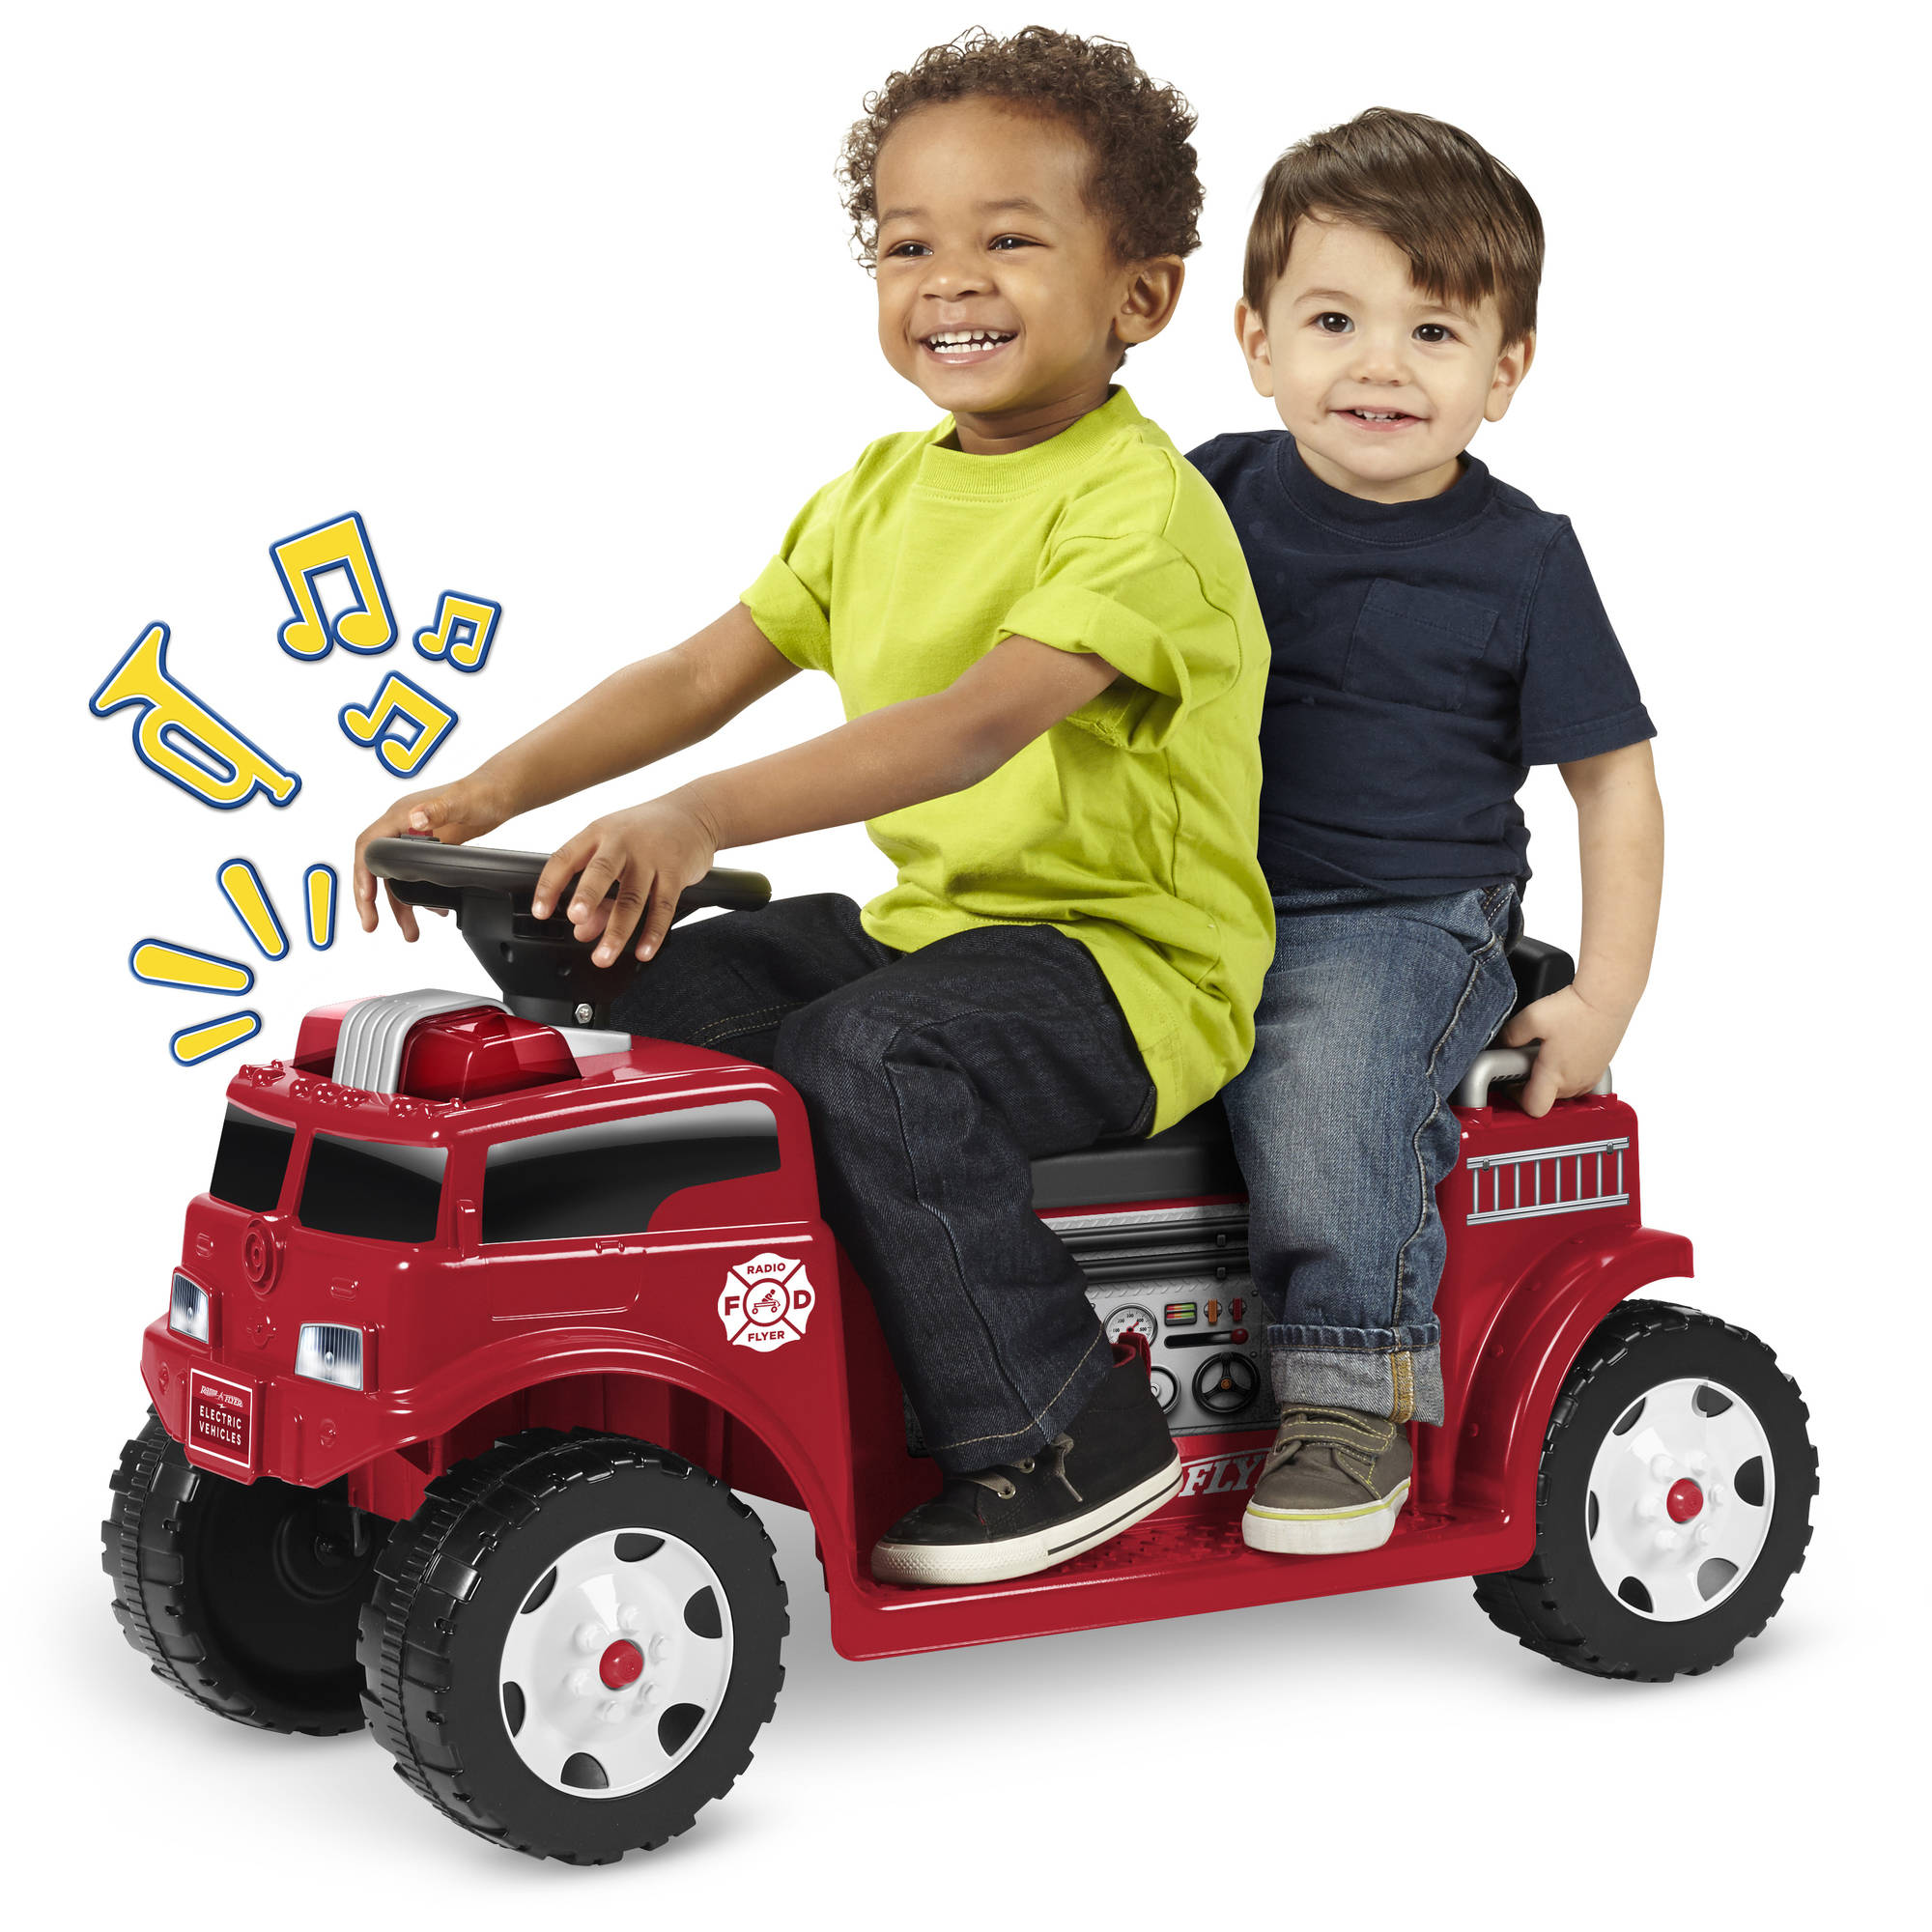 nickelodeon paw patrol on a roll marshall figure and vehicle